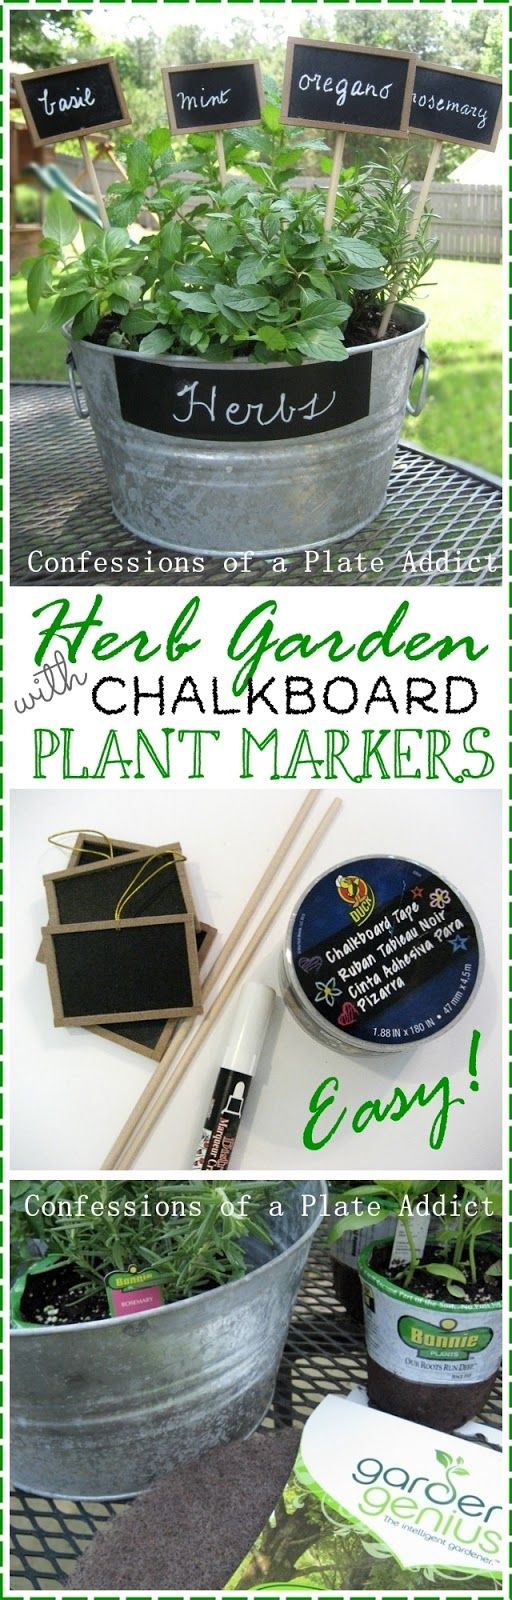 Mini Herb Garden with Chalkboard Plant Markers